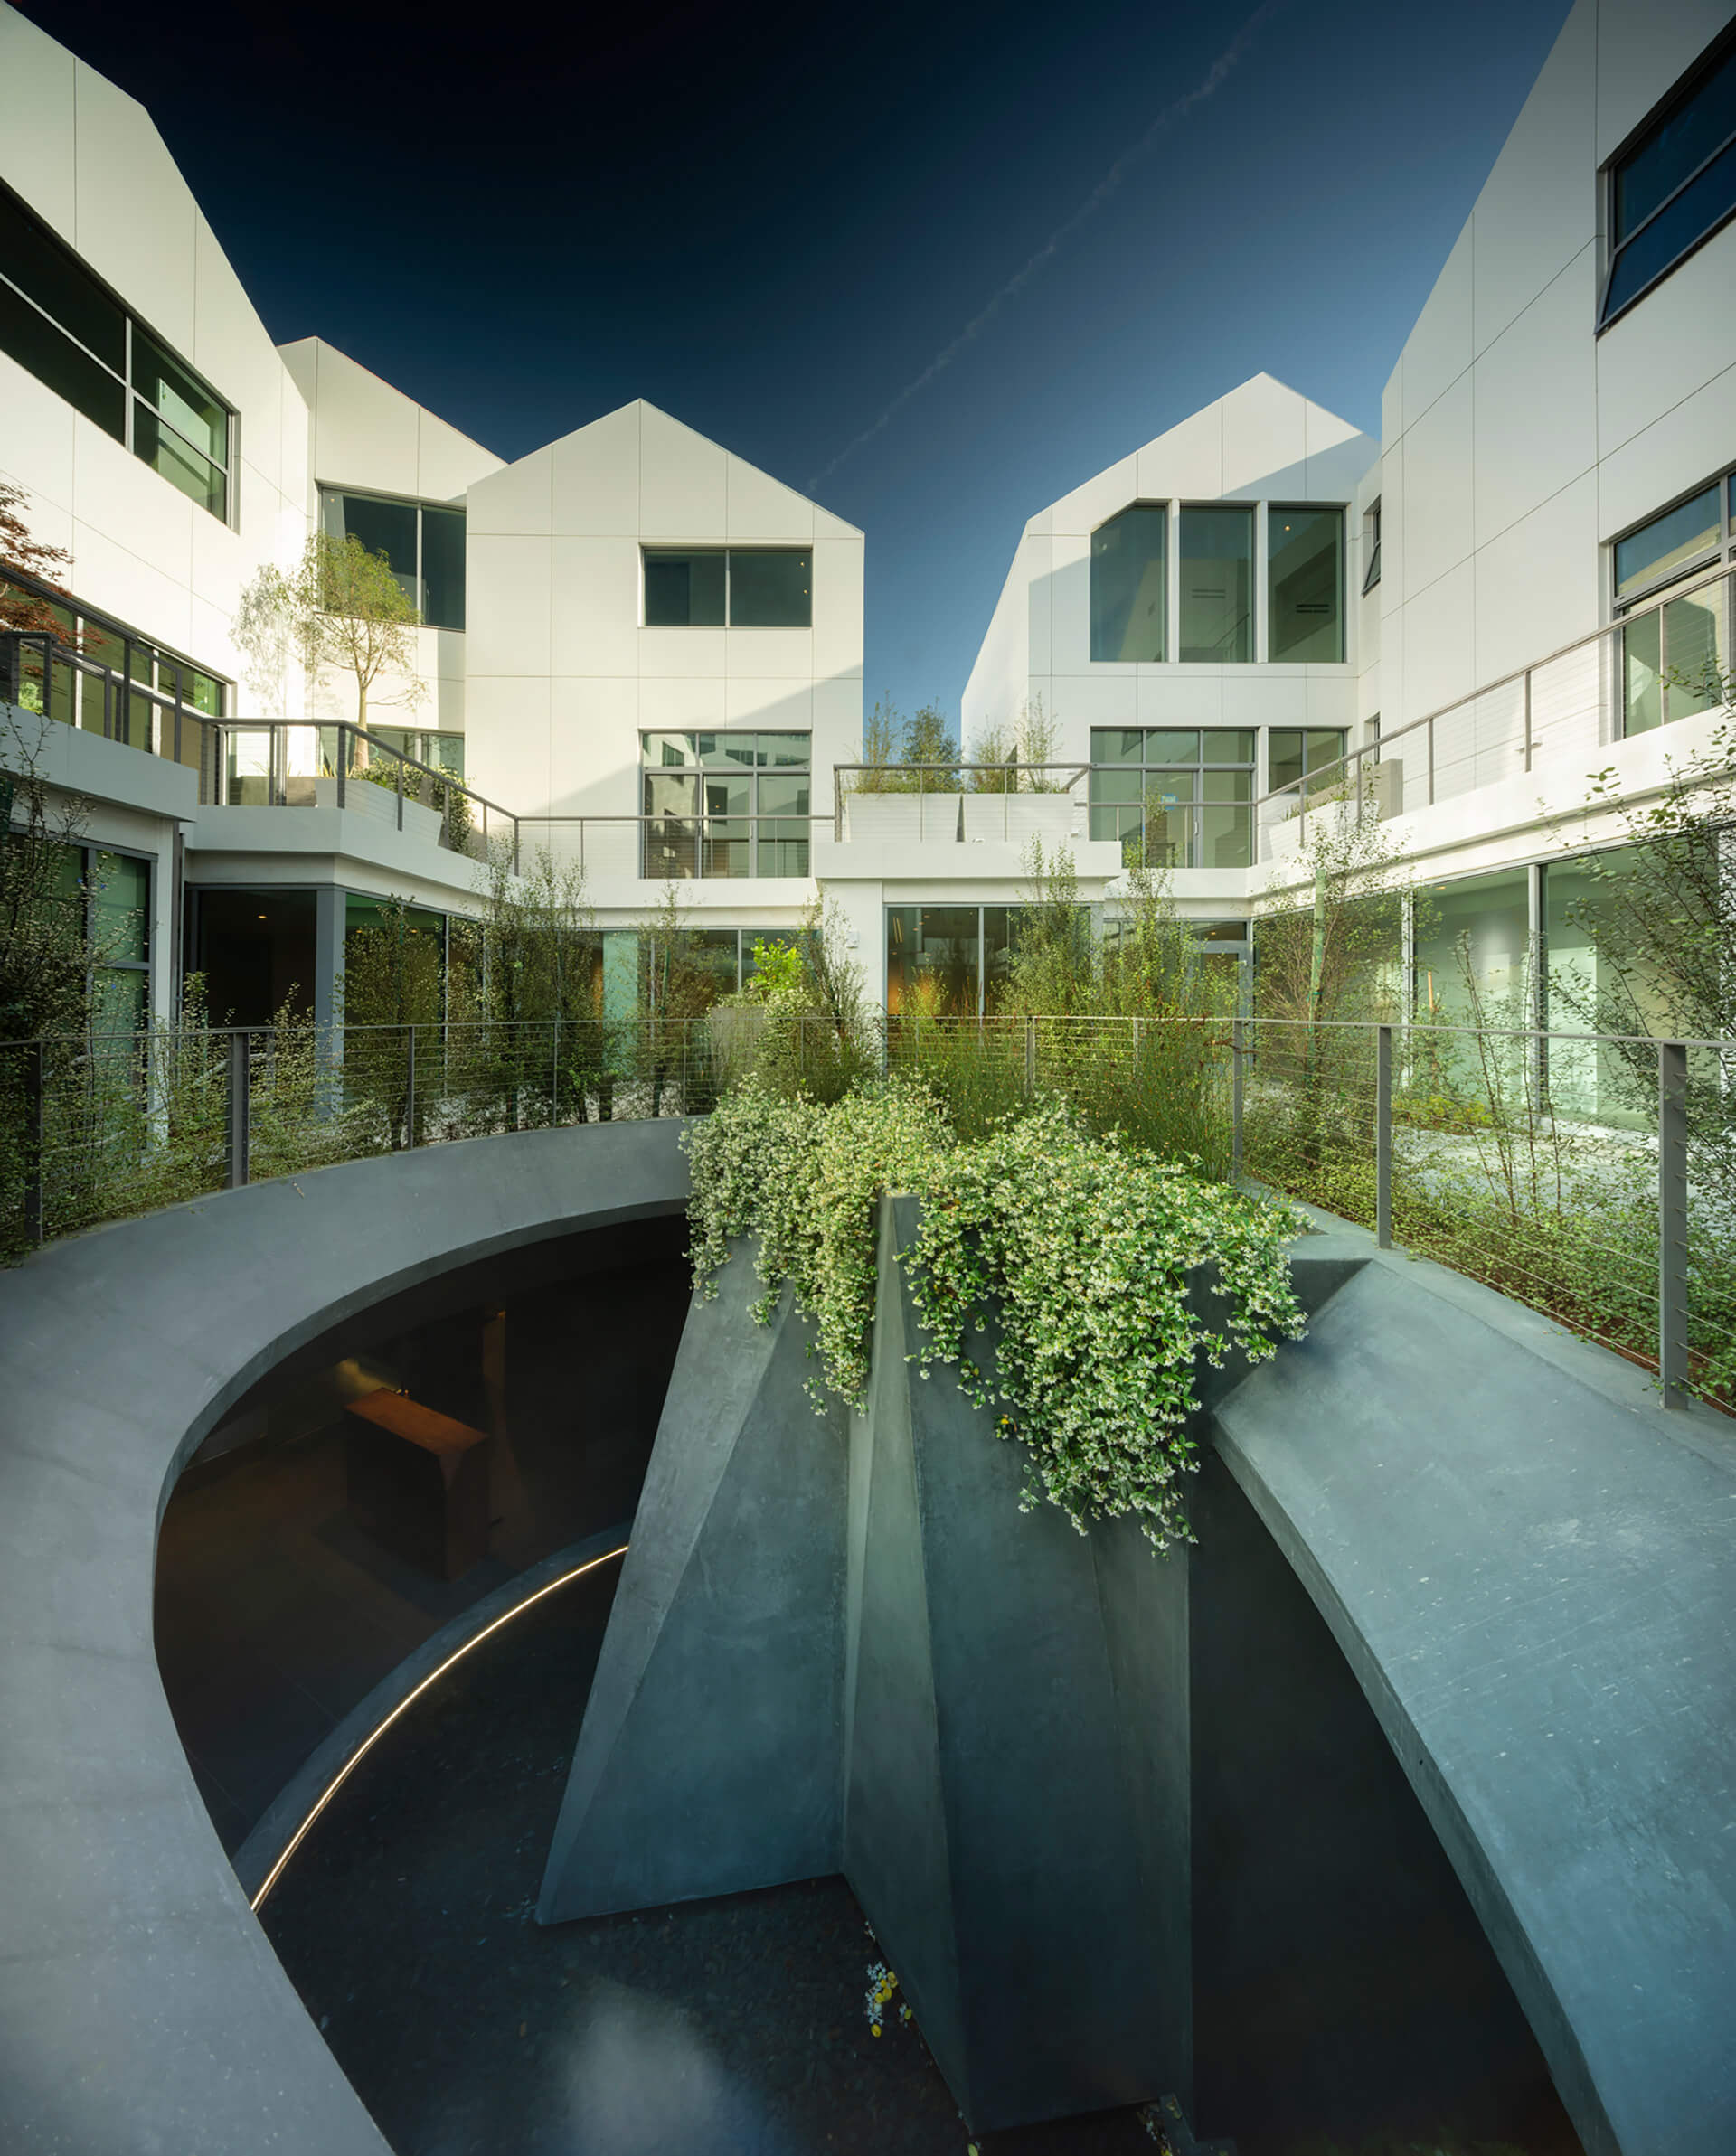 Gardenhouse is half urban, half nature | Gardenhouse by MAD Architects | STIRworld